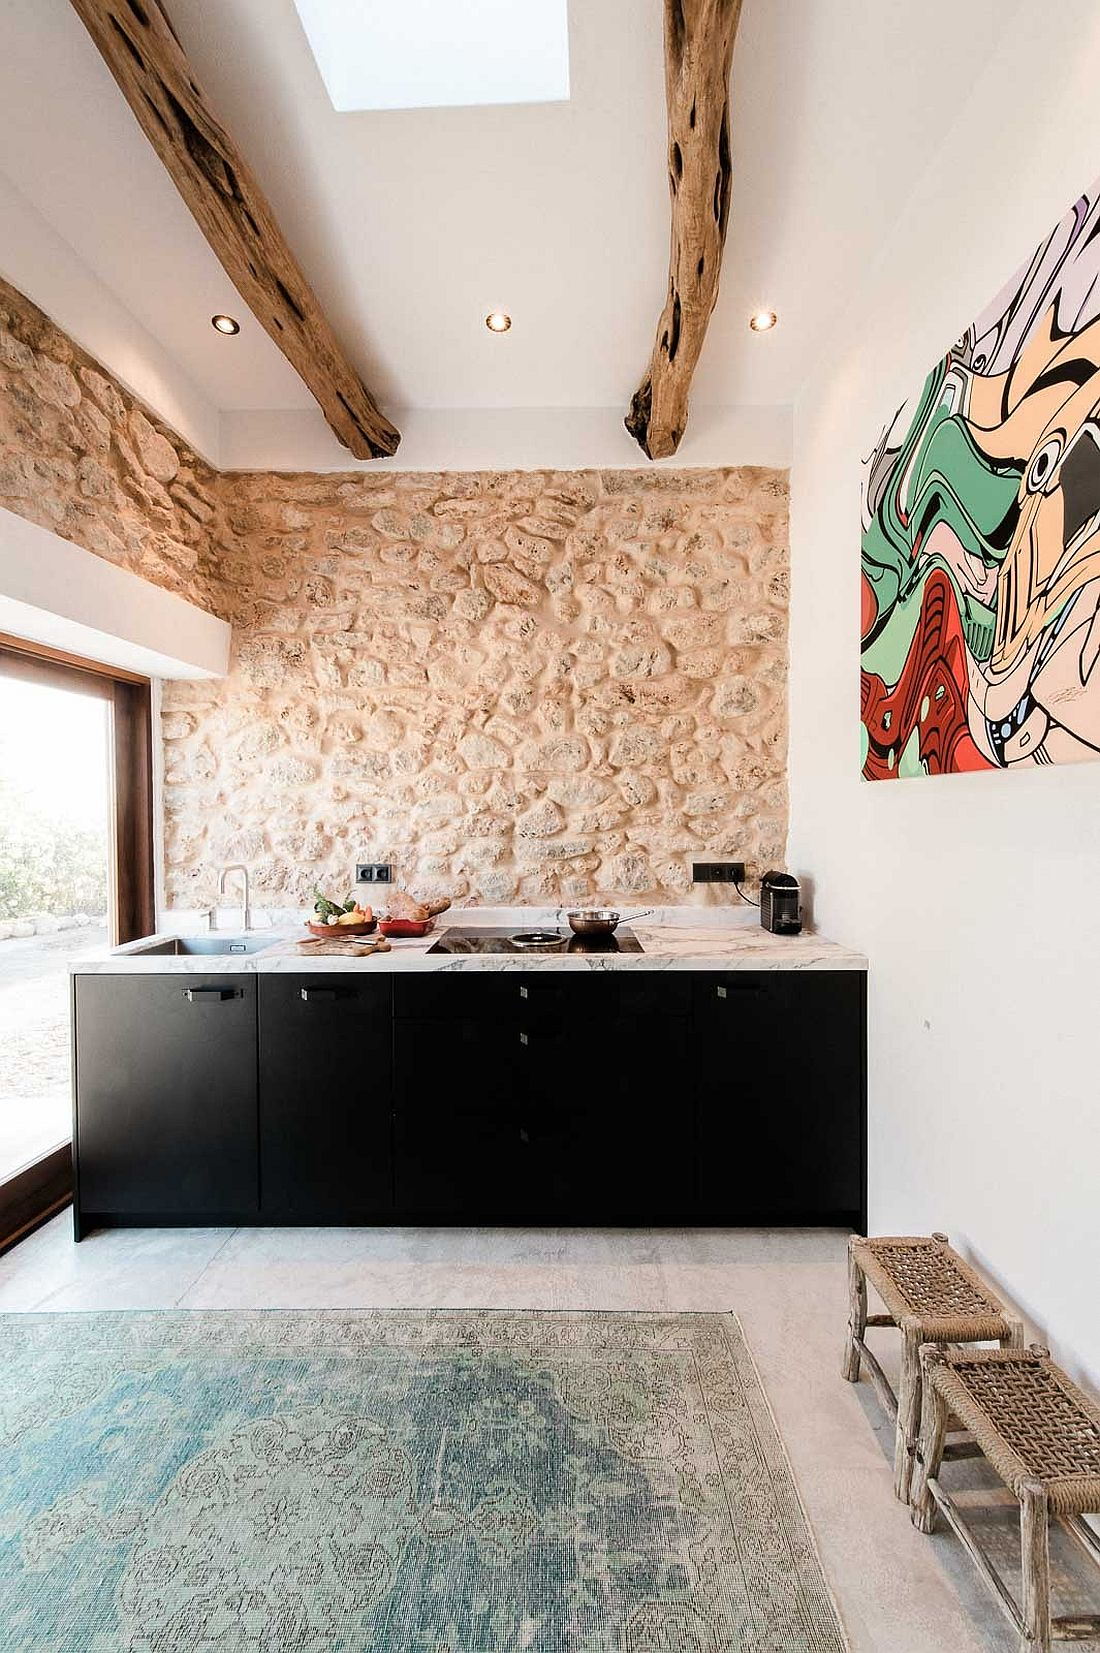 Steel designer kitchen with marble top from Eginstill inside the Ibiza home